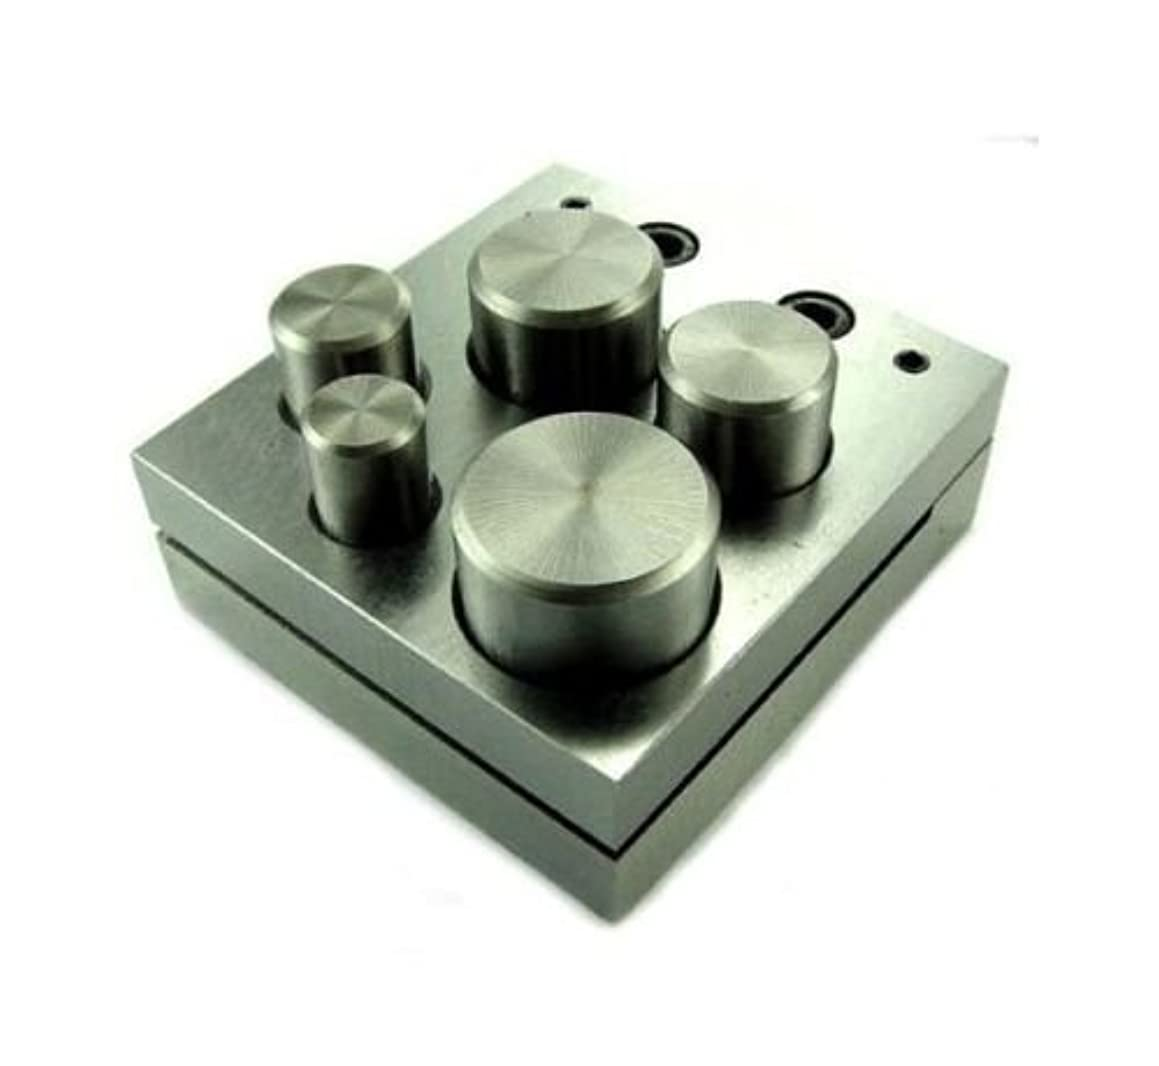 5pc Disc Cutter Punches Jewelry Metal up to 1inch Dc05